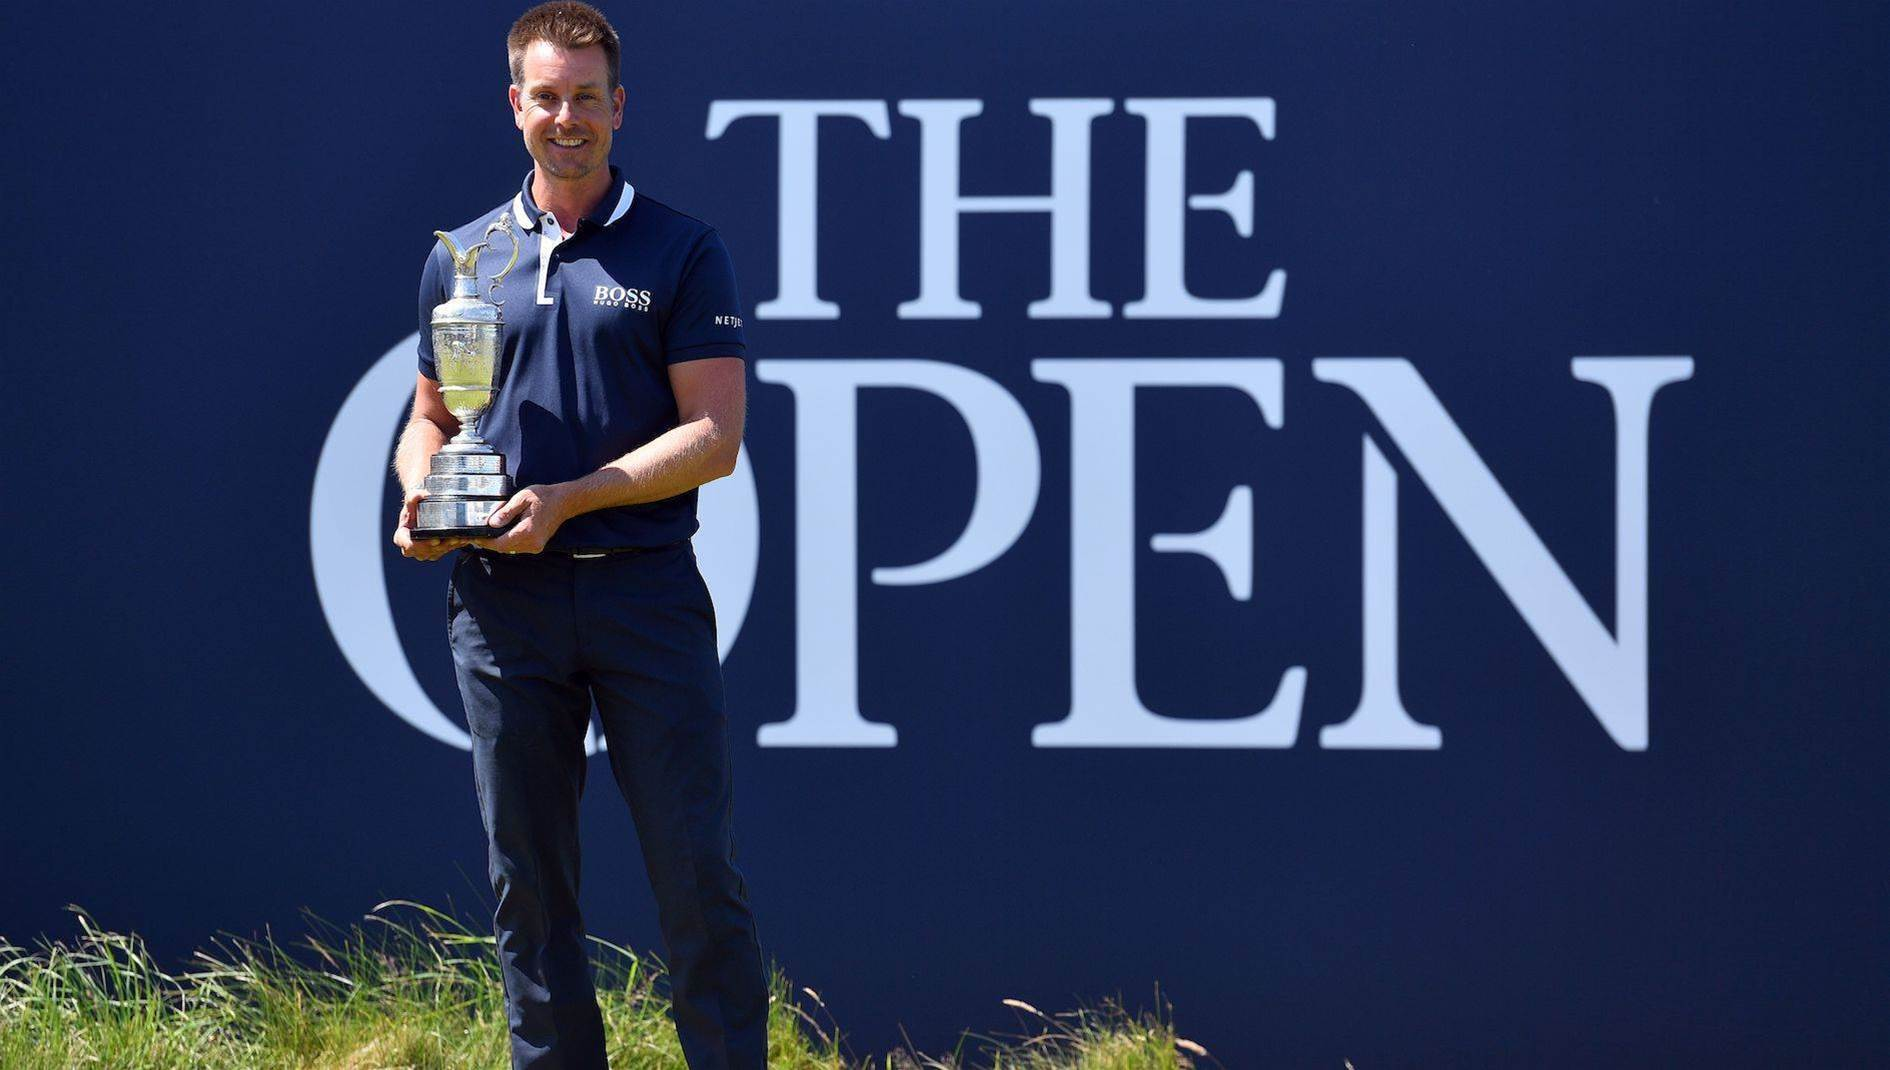 THE OPEN: Stenson makes a sky-high promise